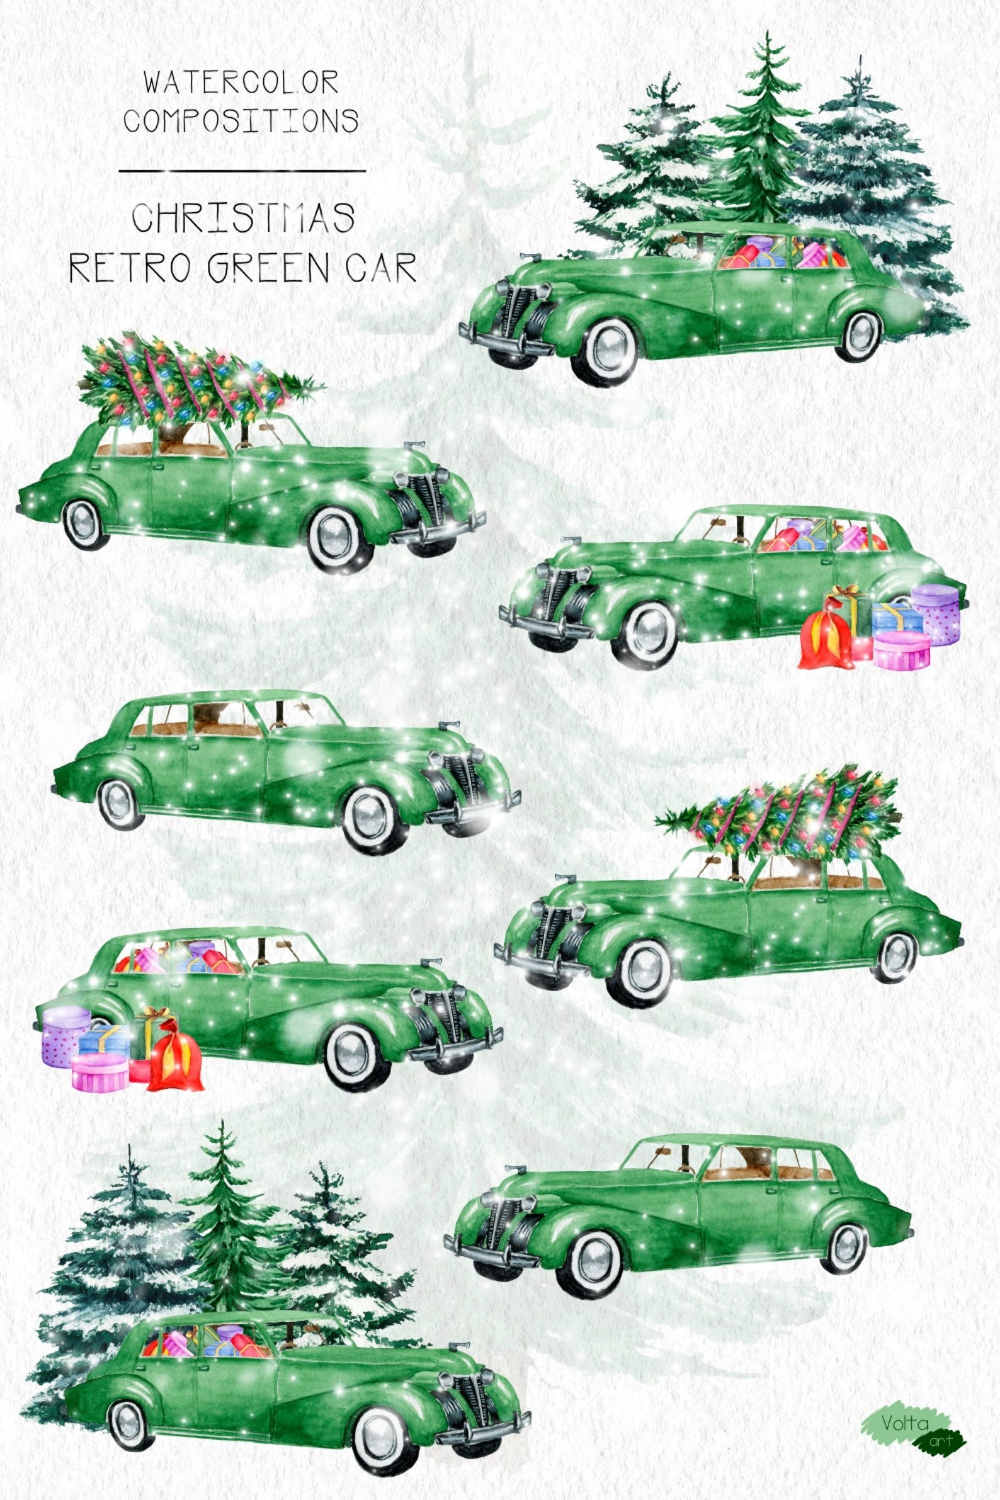 Christmas Car Commercial 2021 Watercolor Green Christmas Car Retro Christmas Car Pine Etsy In 2021 Christmas Car Retro Christmas Green Christmas